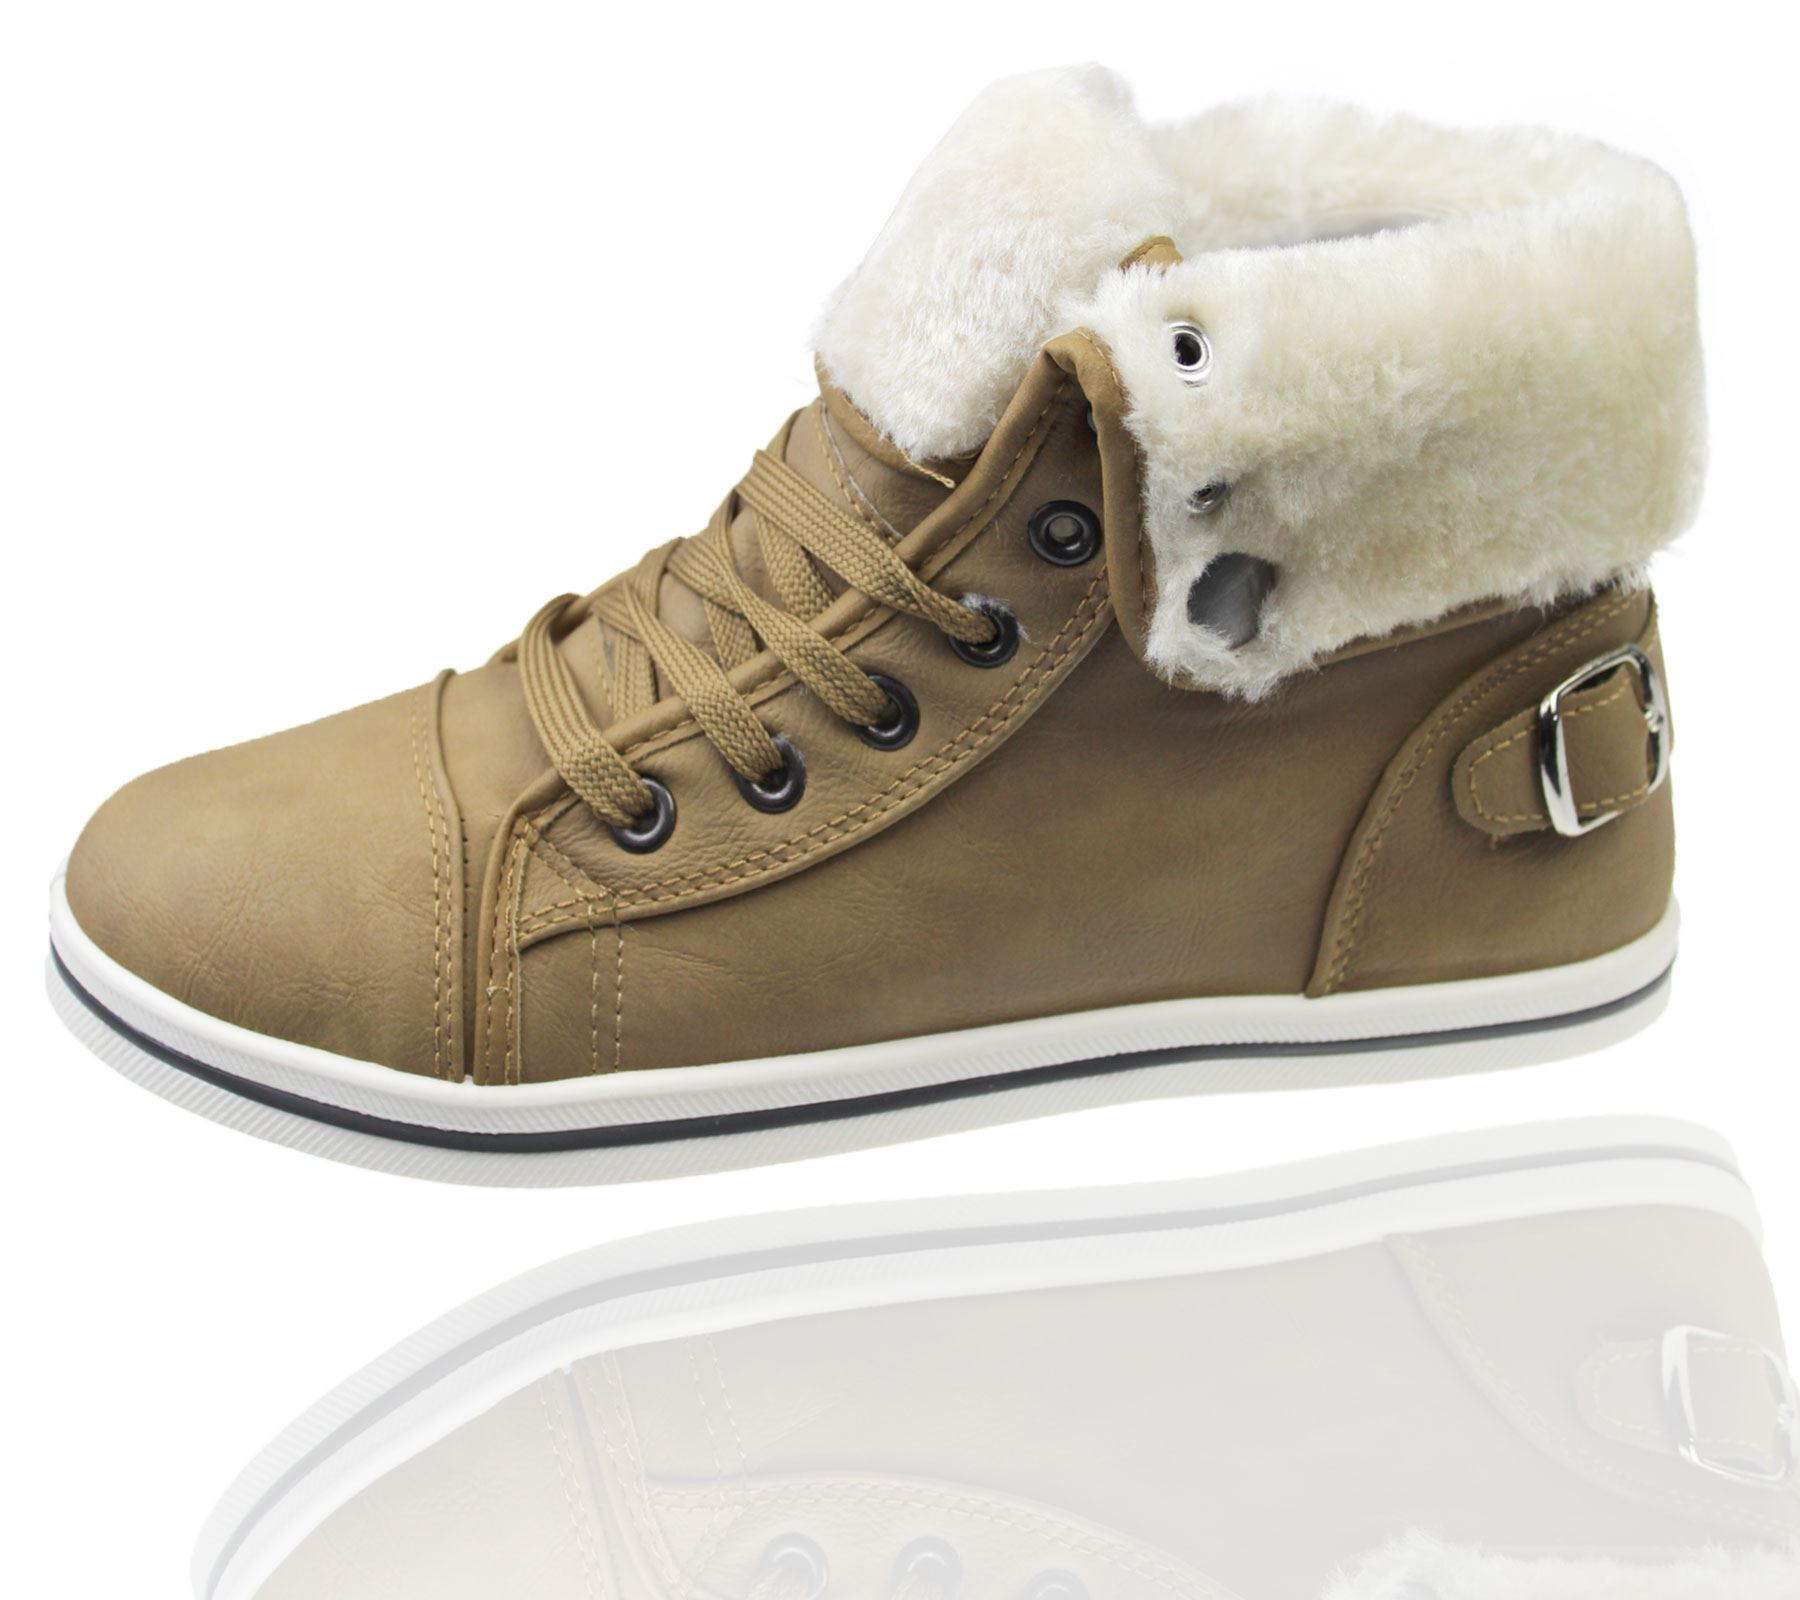 Girls-Boots-Womens-Warm-Lined-High-Top-Ankle-Trainer-Ladies-Winter-Shoes-Size miniatura 105